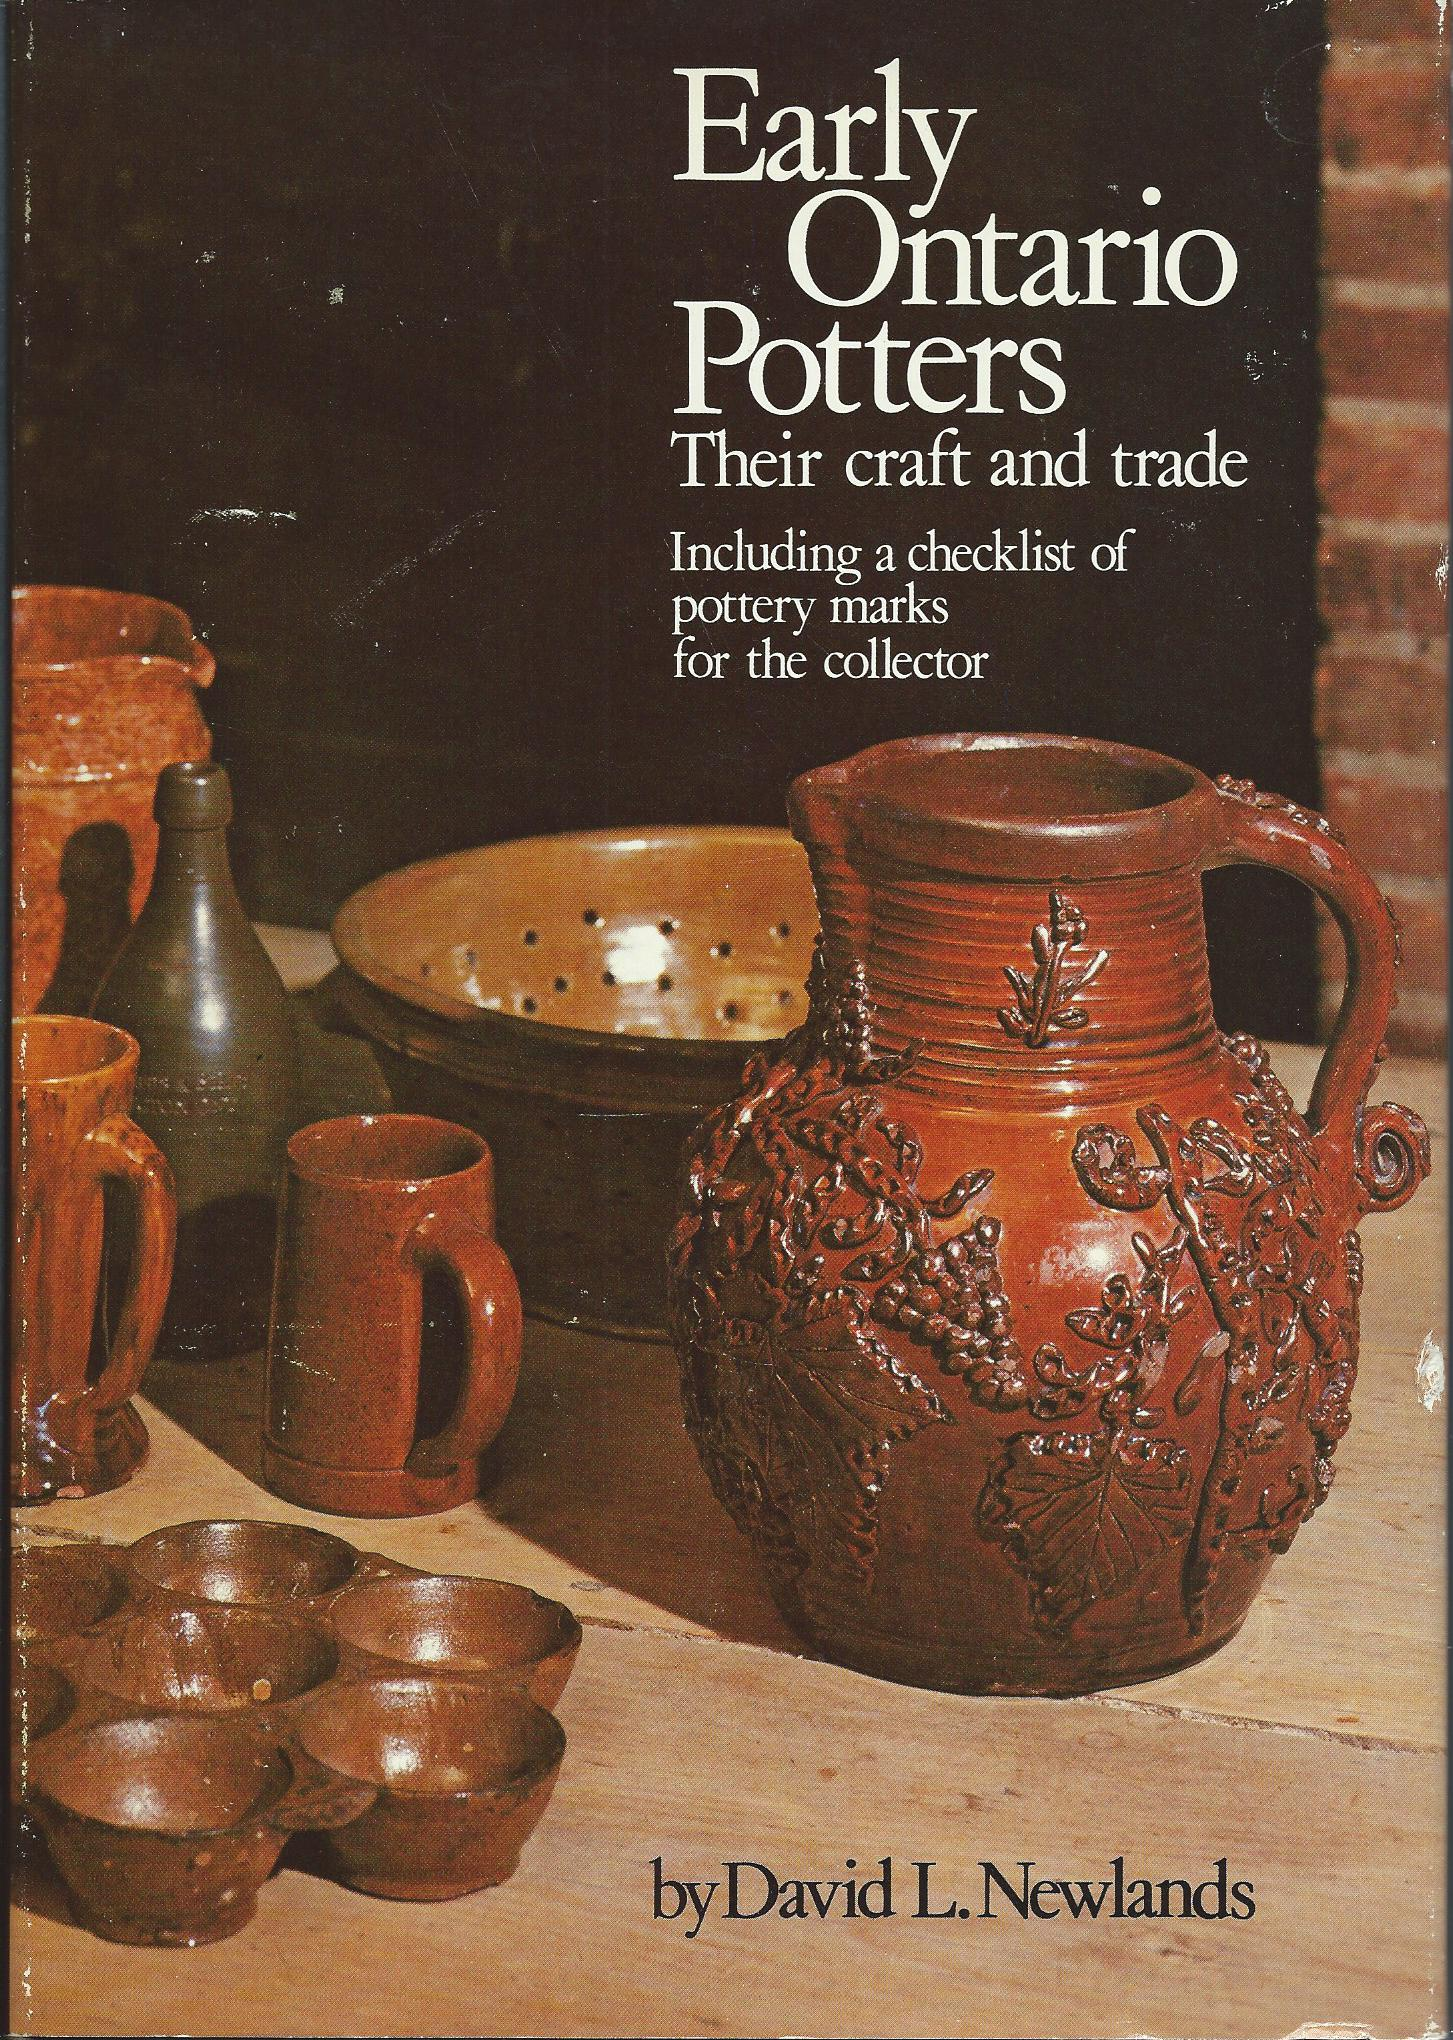 Image for Their Craft and Trade - Including a Checklist of Pottery Marks for the Collector; EARLY ONTARIO POTTERS